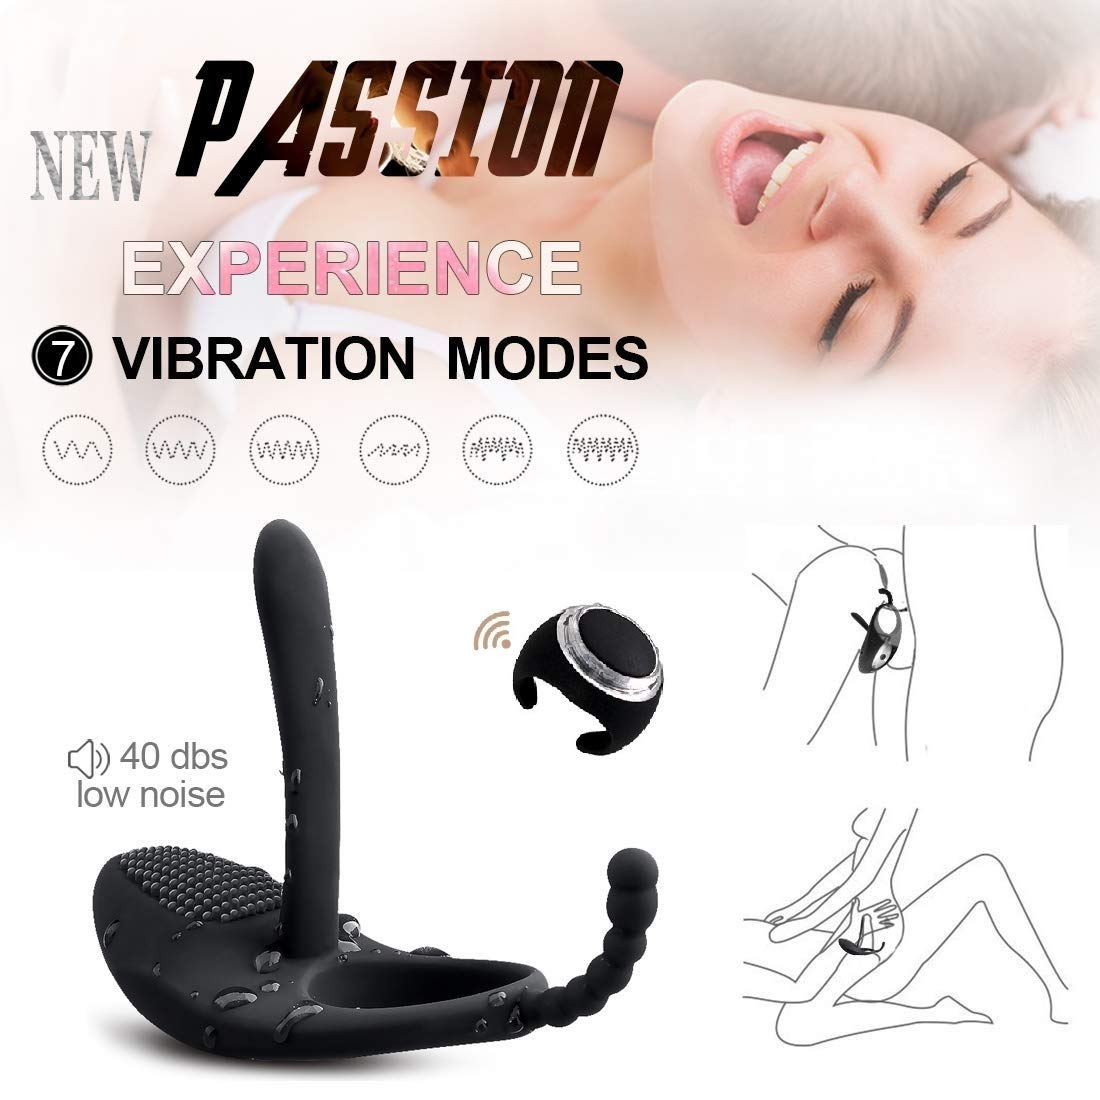 Waterproof Male Ring Massage Adult Toys Dicks Play Stimulators Things for Men, Women and Couples